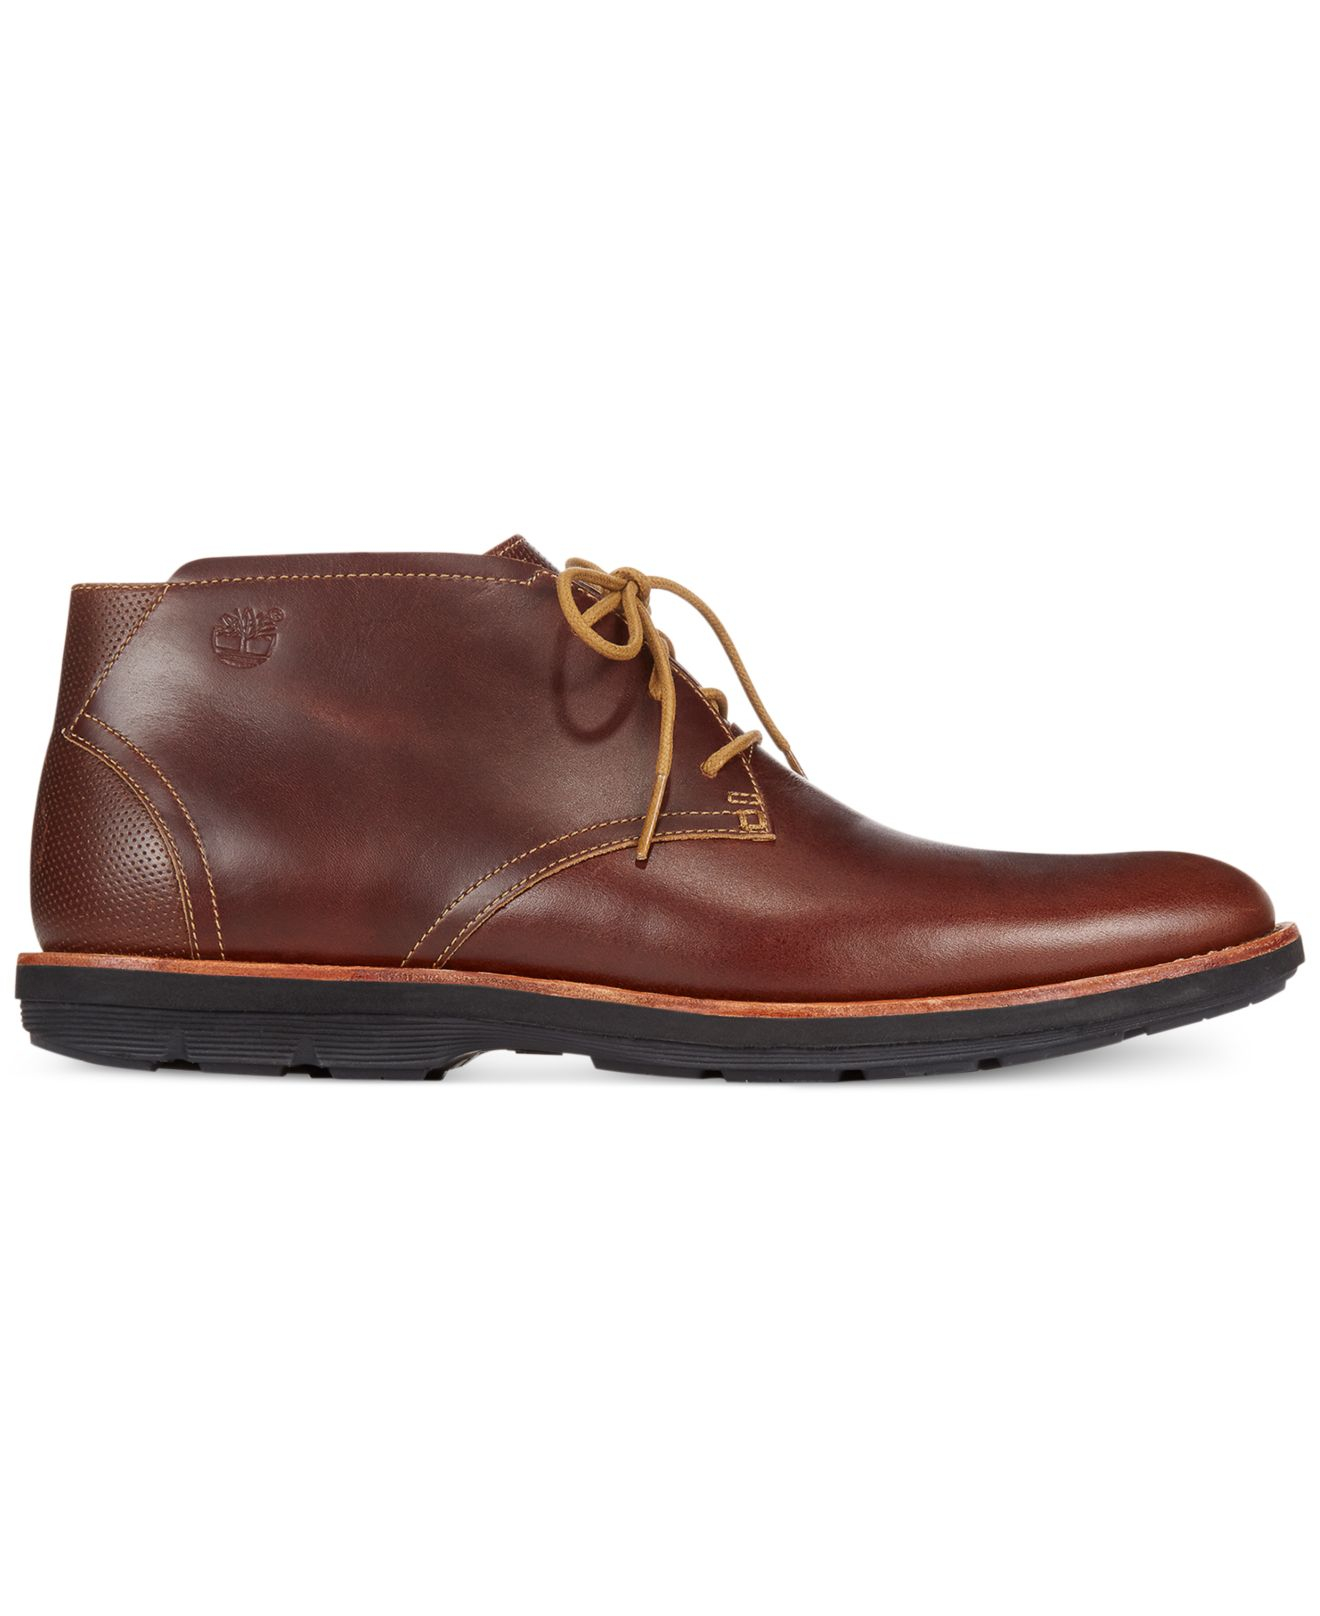 Timberland Brown Earthkeepers Kempton Chukka Boots for men